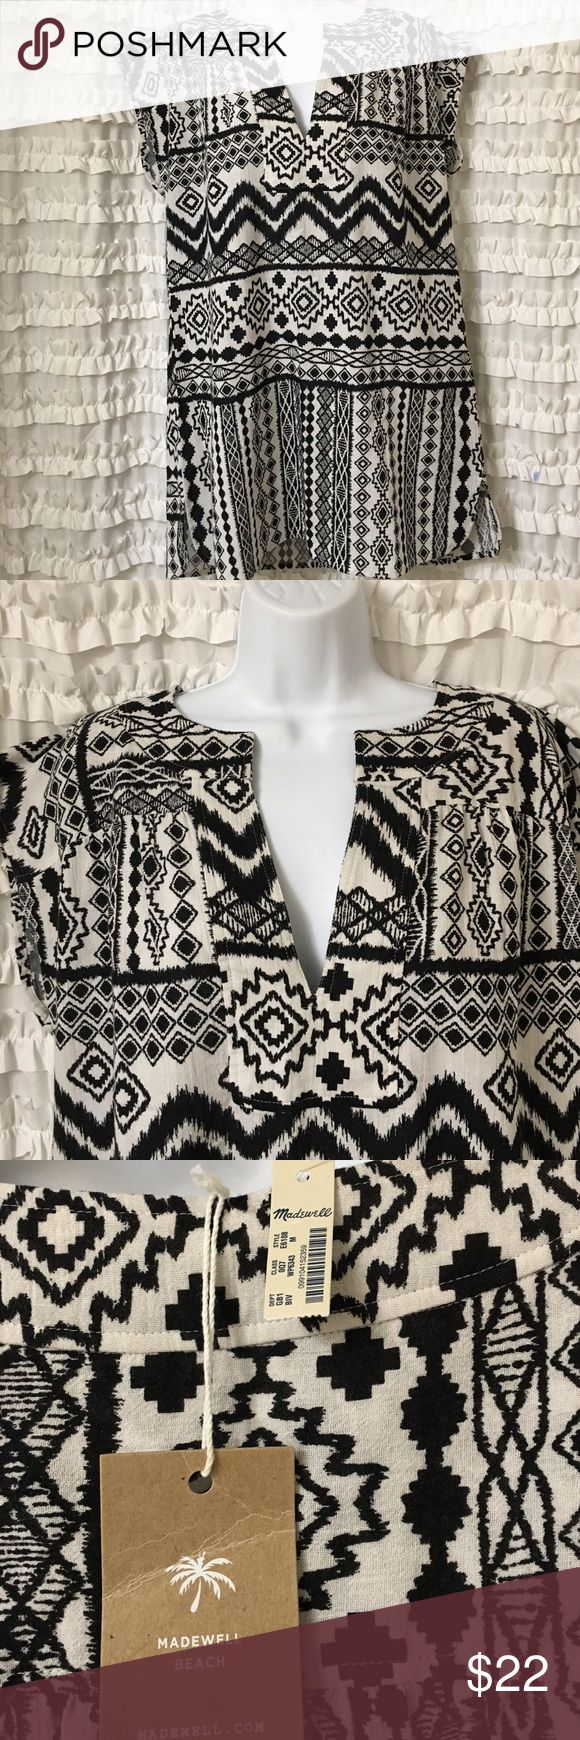 MADEWELL Beach Tunic MEDIUM-Madewell Belize Aztec Coverup--Can be worn as a coverup or as a tunic--NWT--Aztec print with a v neck and small slits on sides-BRAND NEW, NEVER WORN!! Madewell Dresses Mini